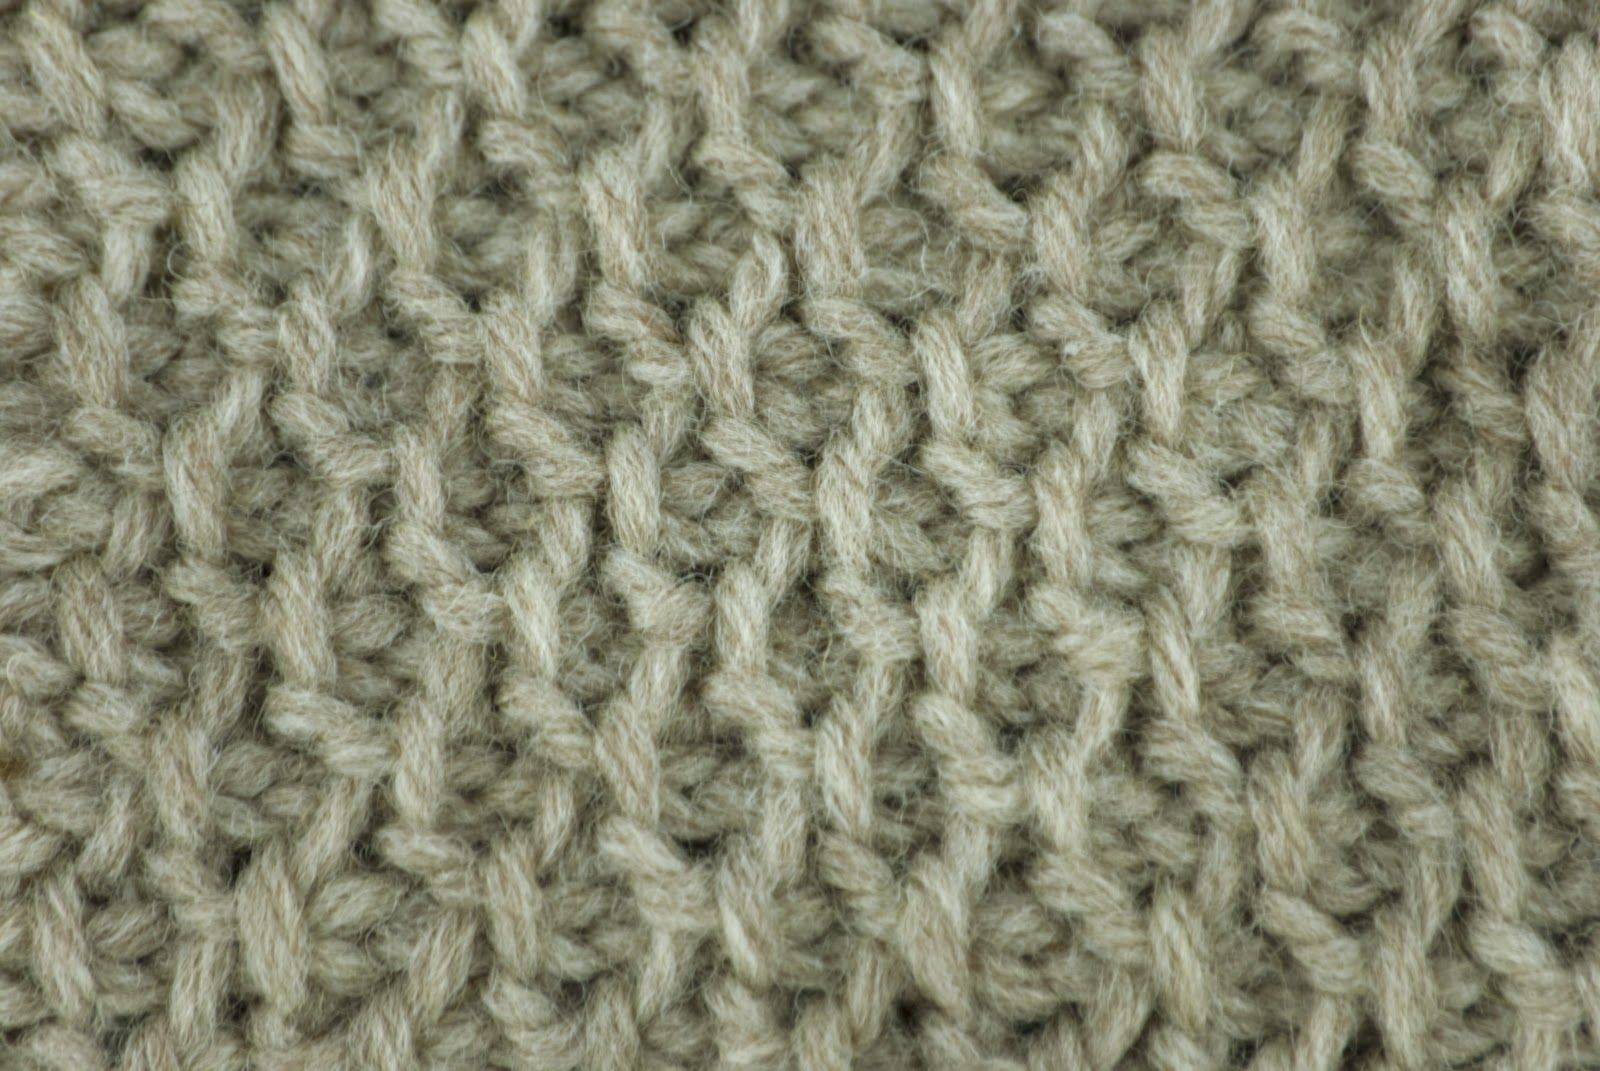 My Tunisian Crochet: Lots of great stitch patterns and tutorials ...